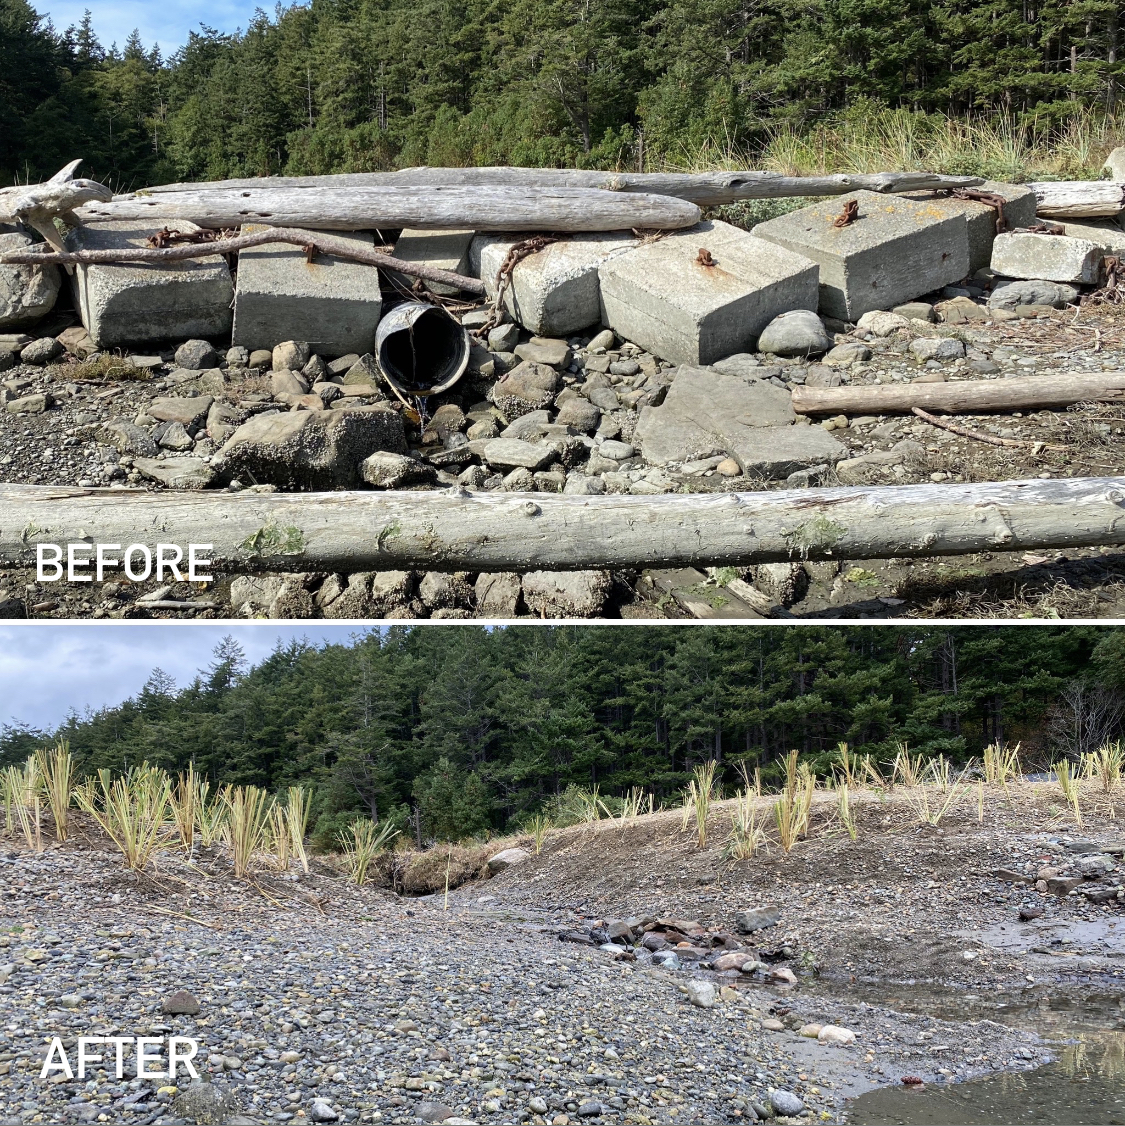 A Succia Island beach with debris before and a restored beach after